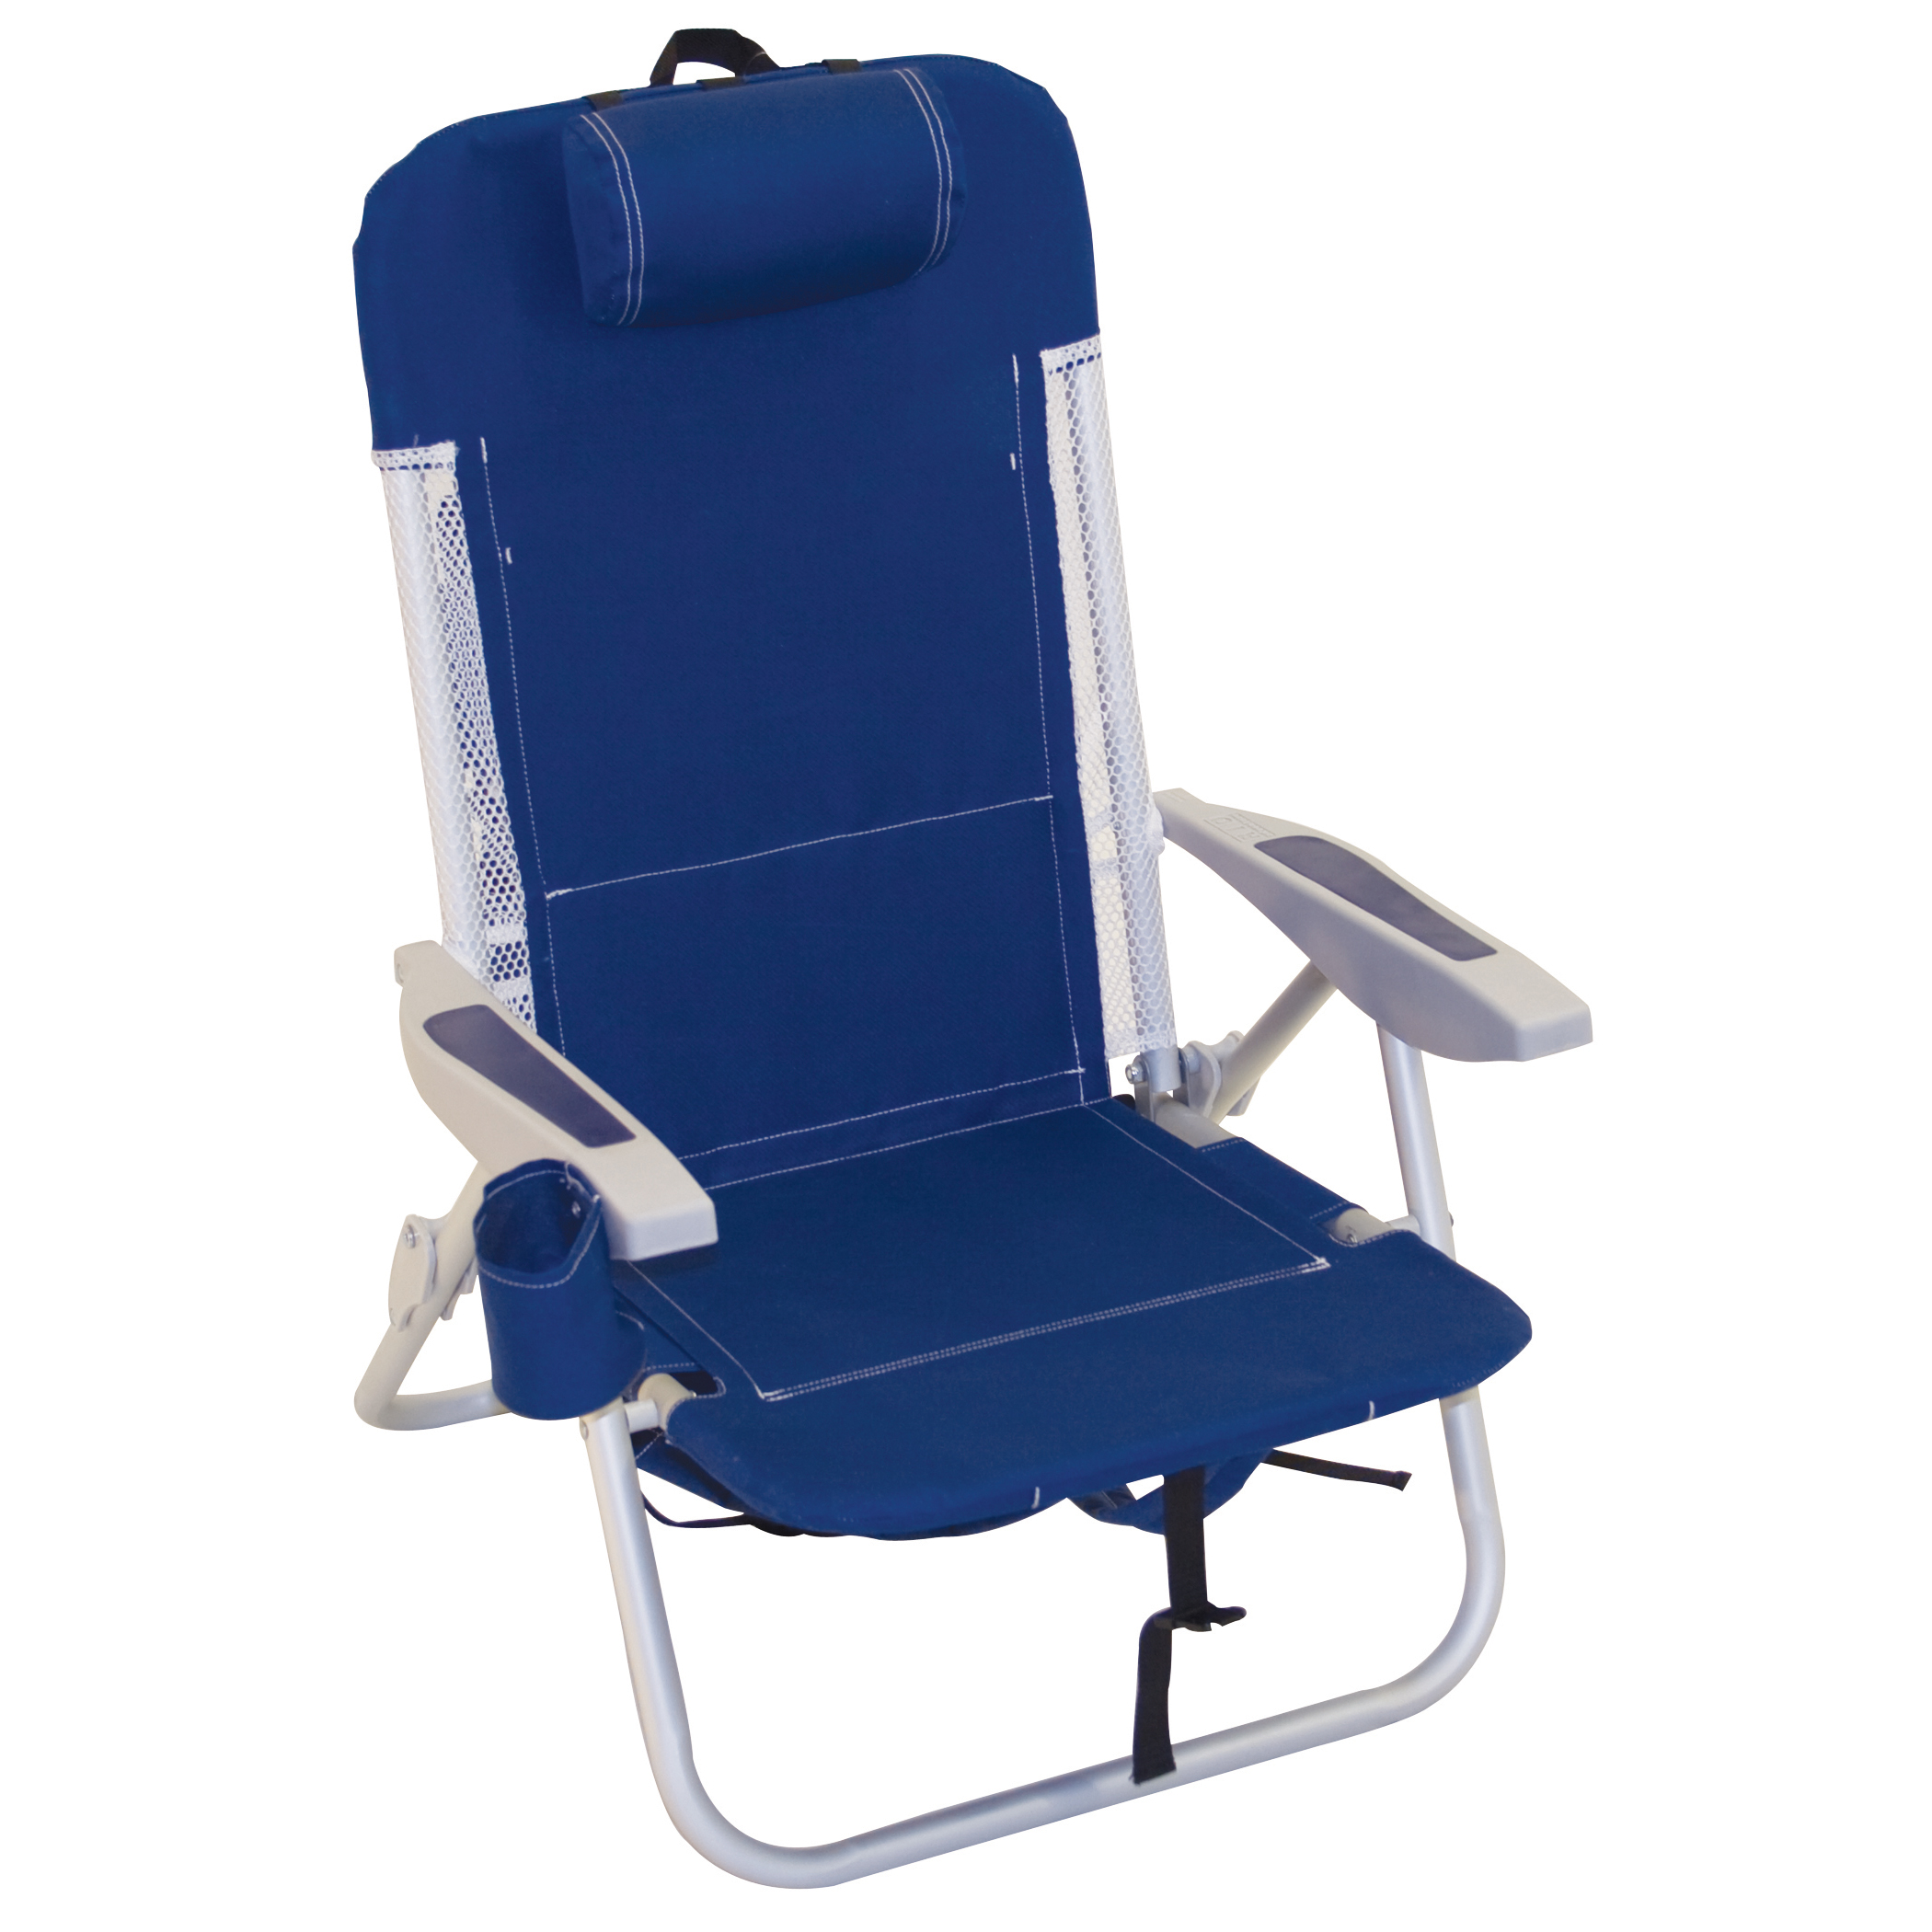 RIO Backpack Chair with Cooler